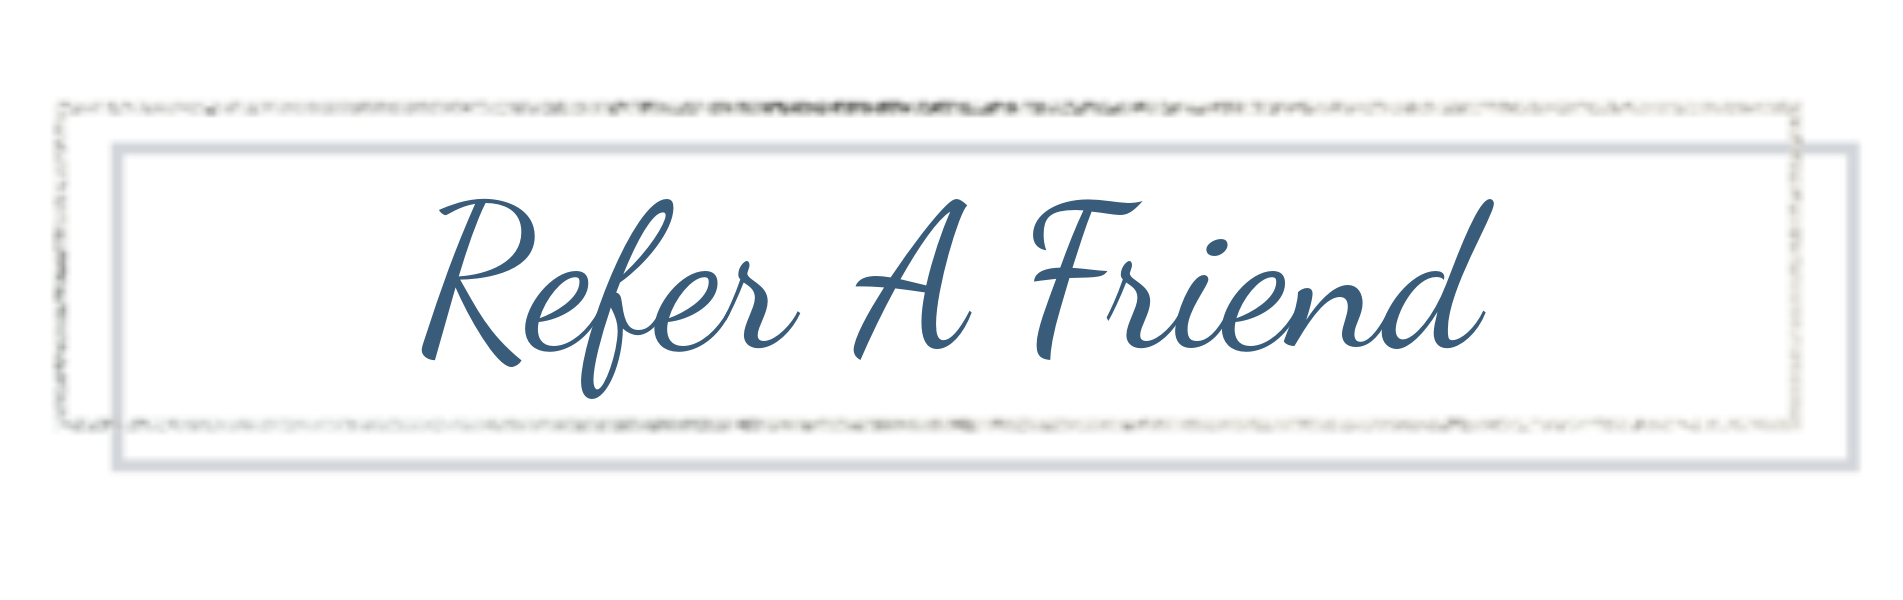 Refer a friend and you receive a $25 credit towards your next Spa Kingston service! - Friends who Spa together, stay together!